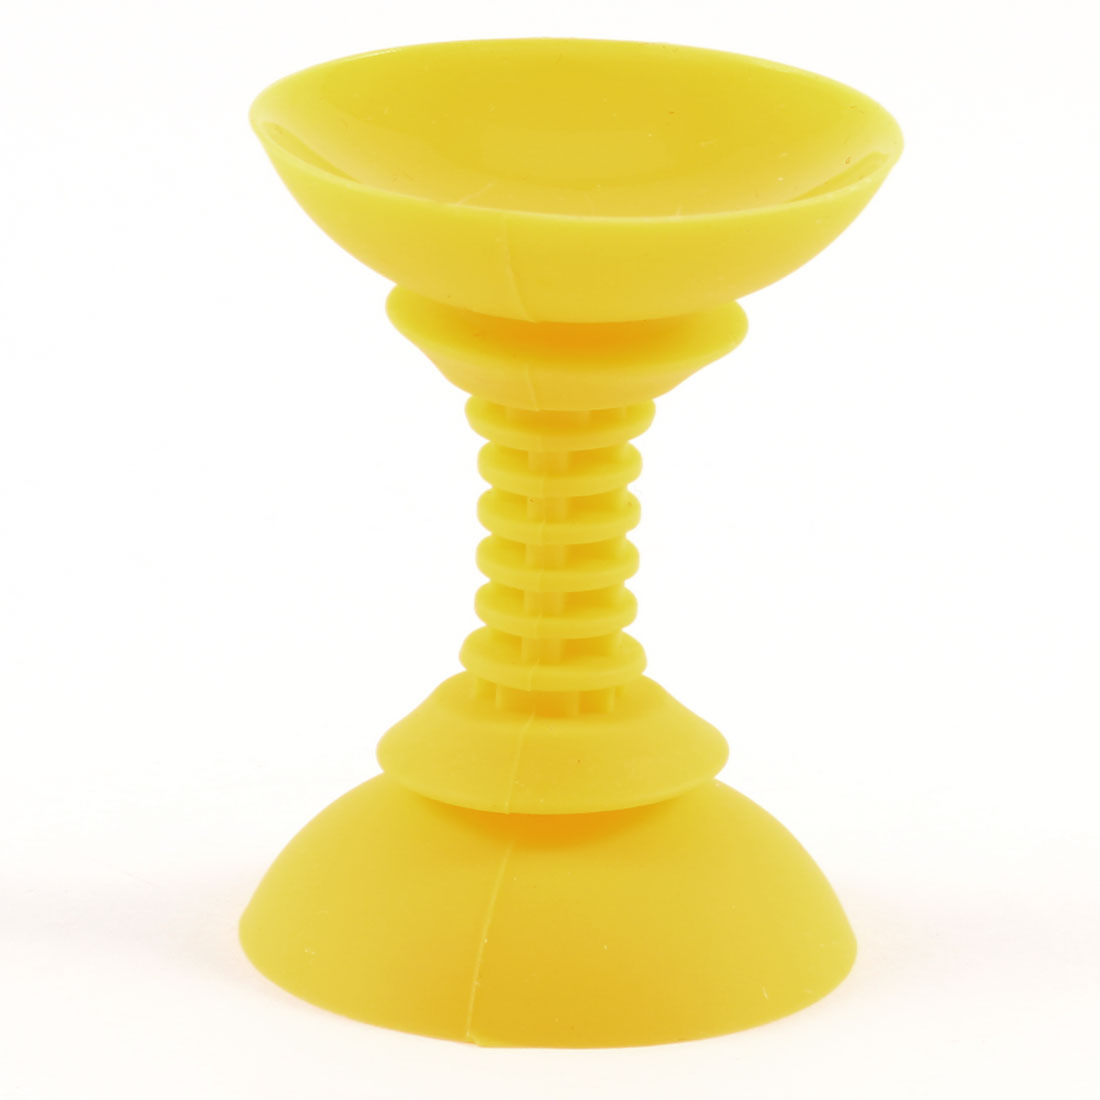 Yellow Soft Silicone Double Side Suction Cup Sucker Support for Cell Phone